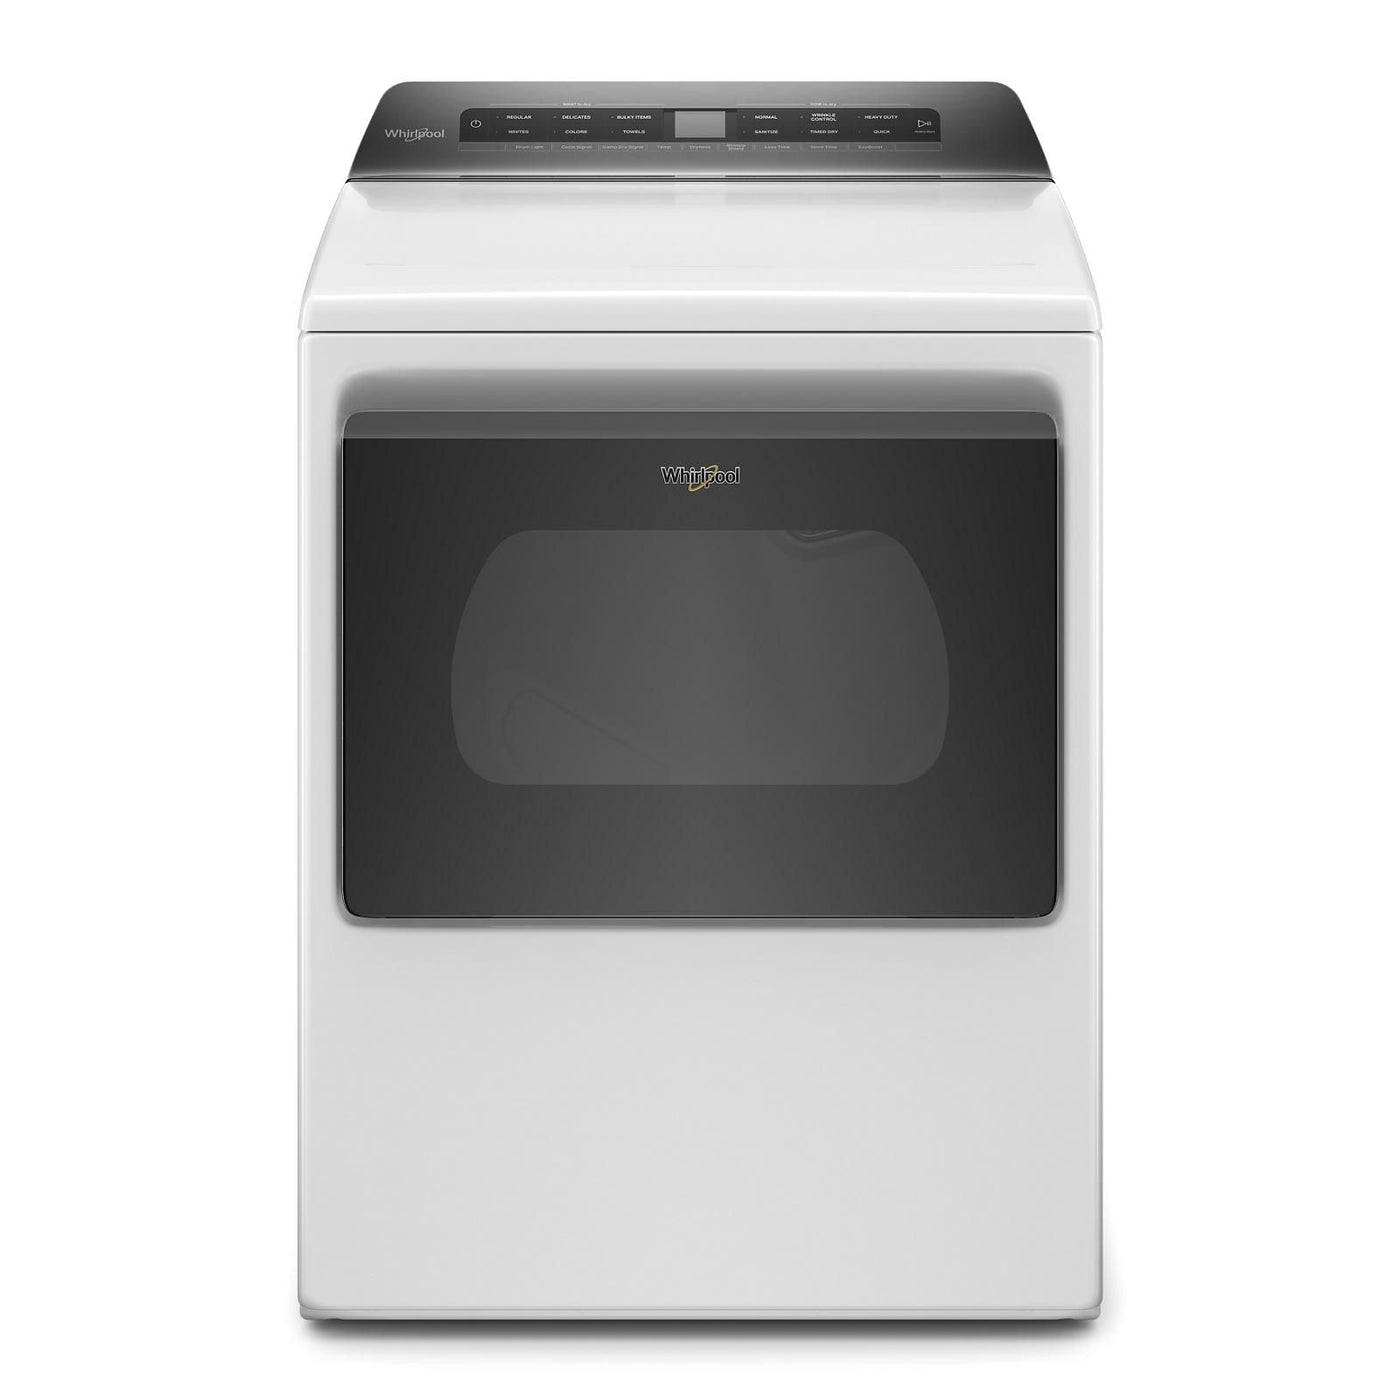 Whirlpool White Electric Dryer 7 4 Cu Ft Ywed5100hw Leon S